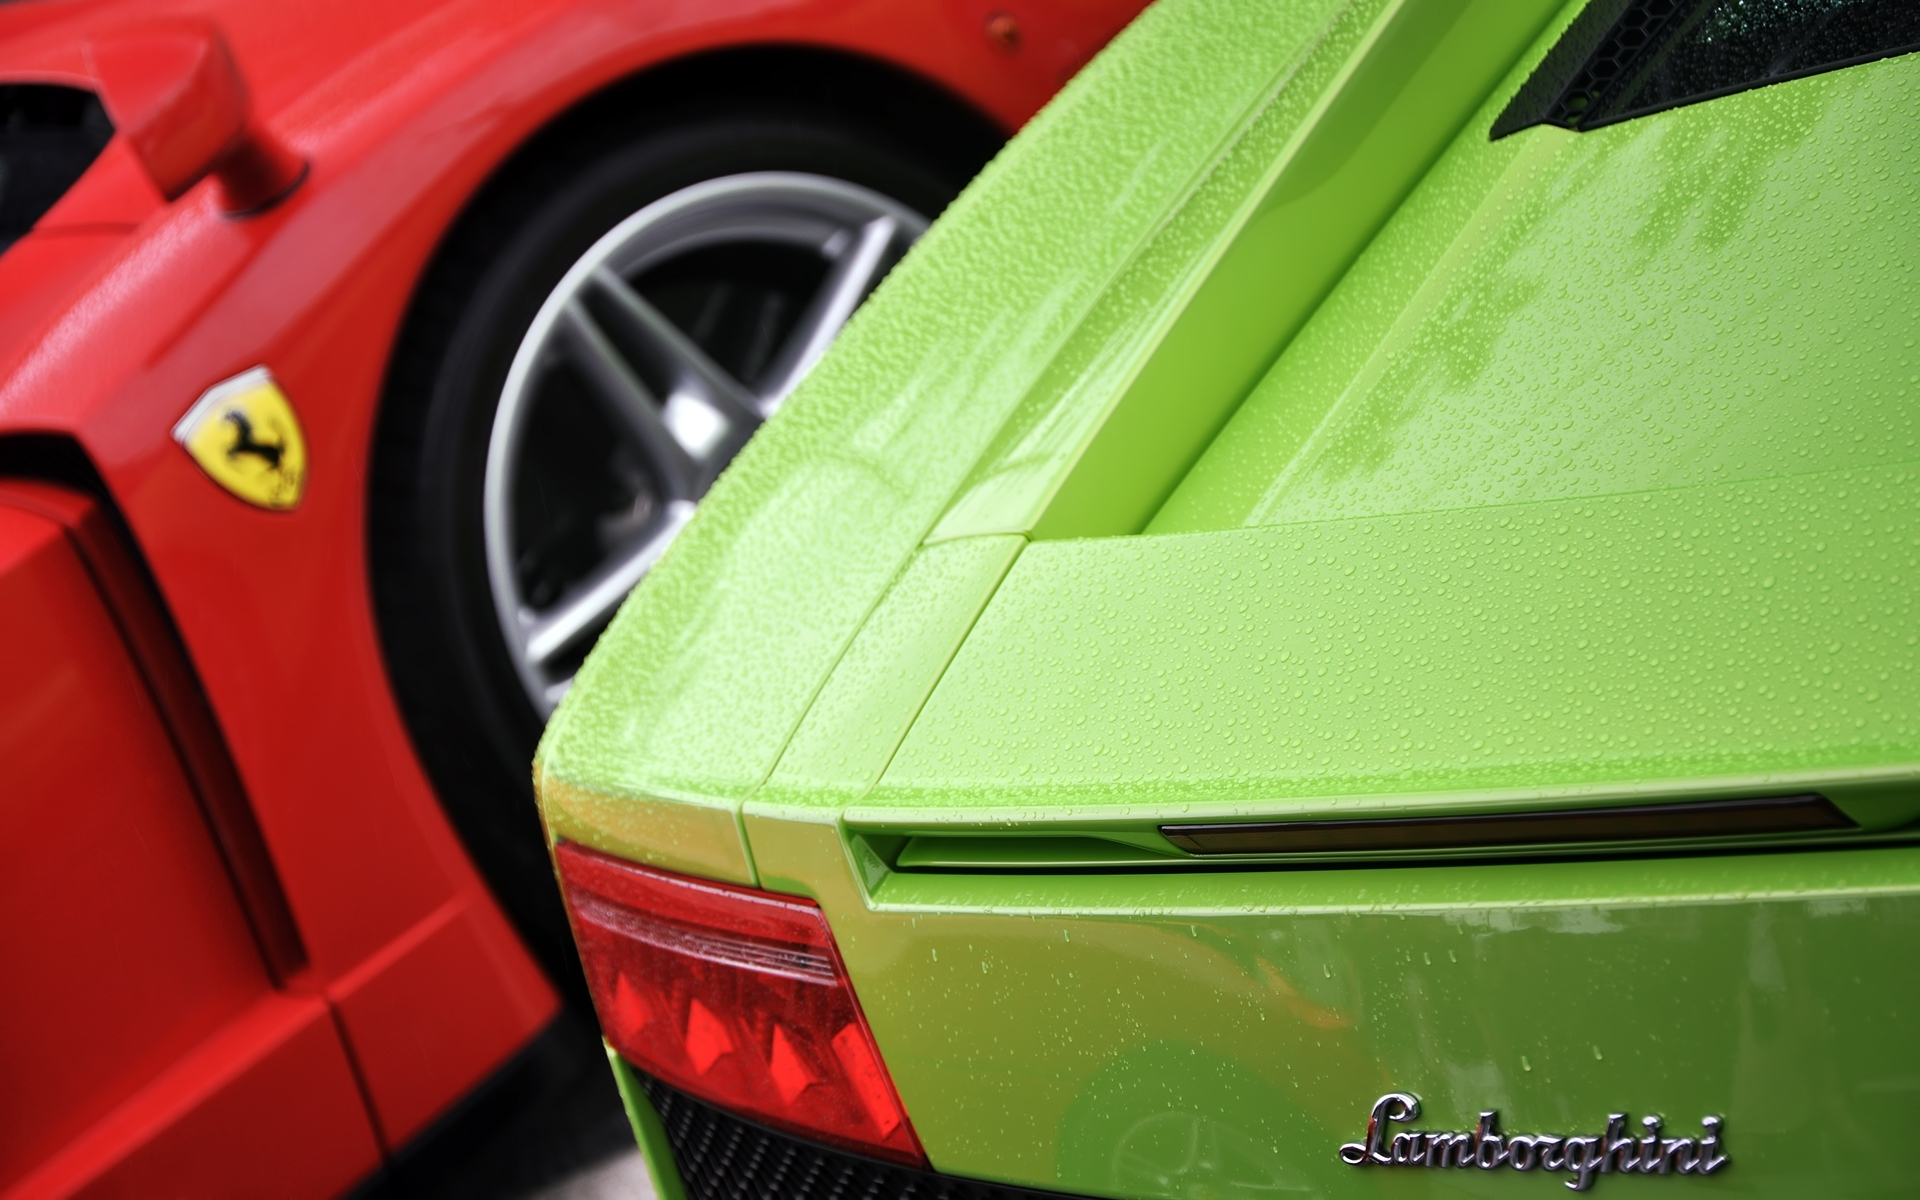 41592 download wallpaper Transport, Auto, Background, Lamborghini screensavers and pictures for free